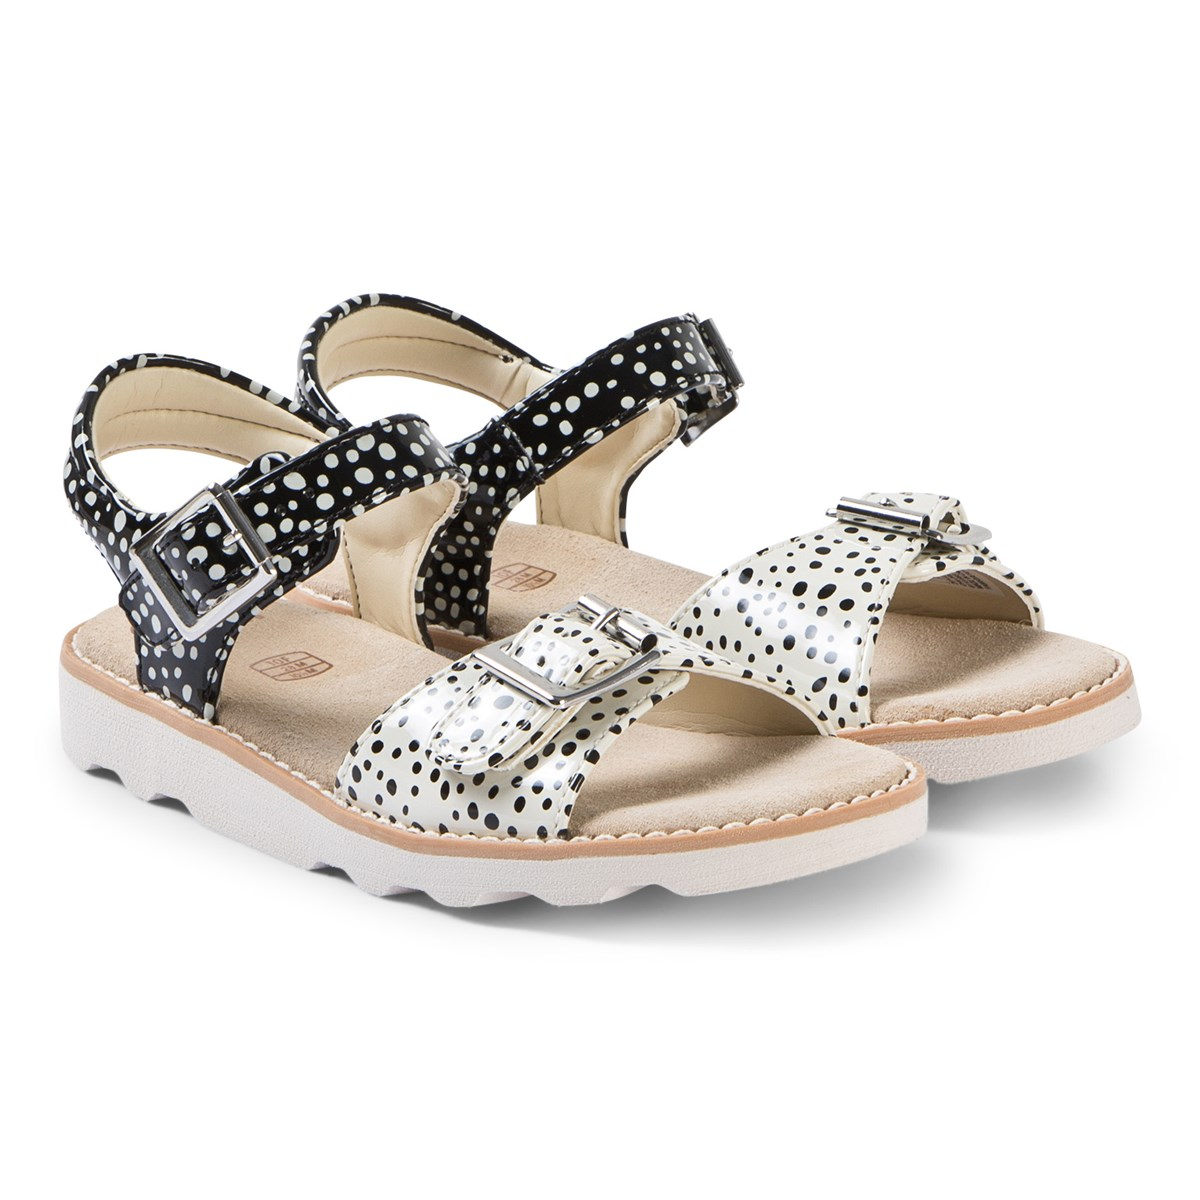 Clarks Black Interest Crown Bloom Sandals Babyshop.dk